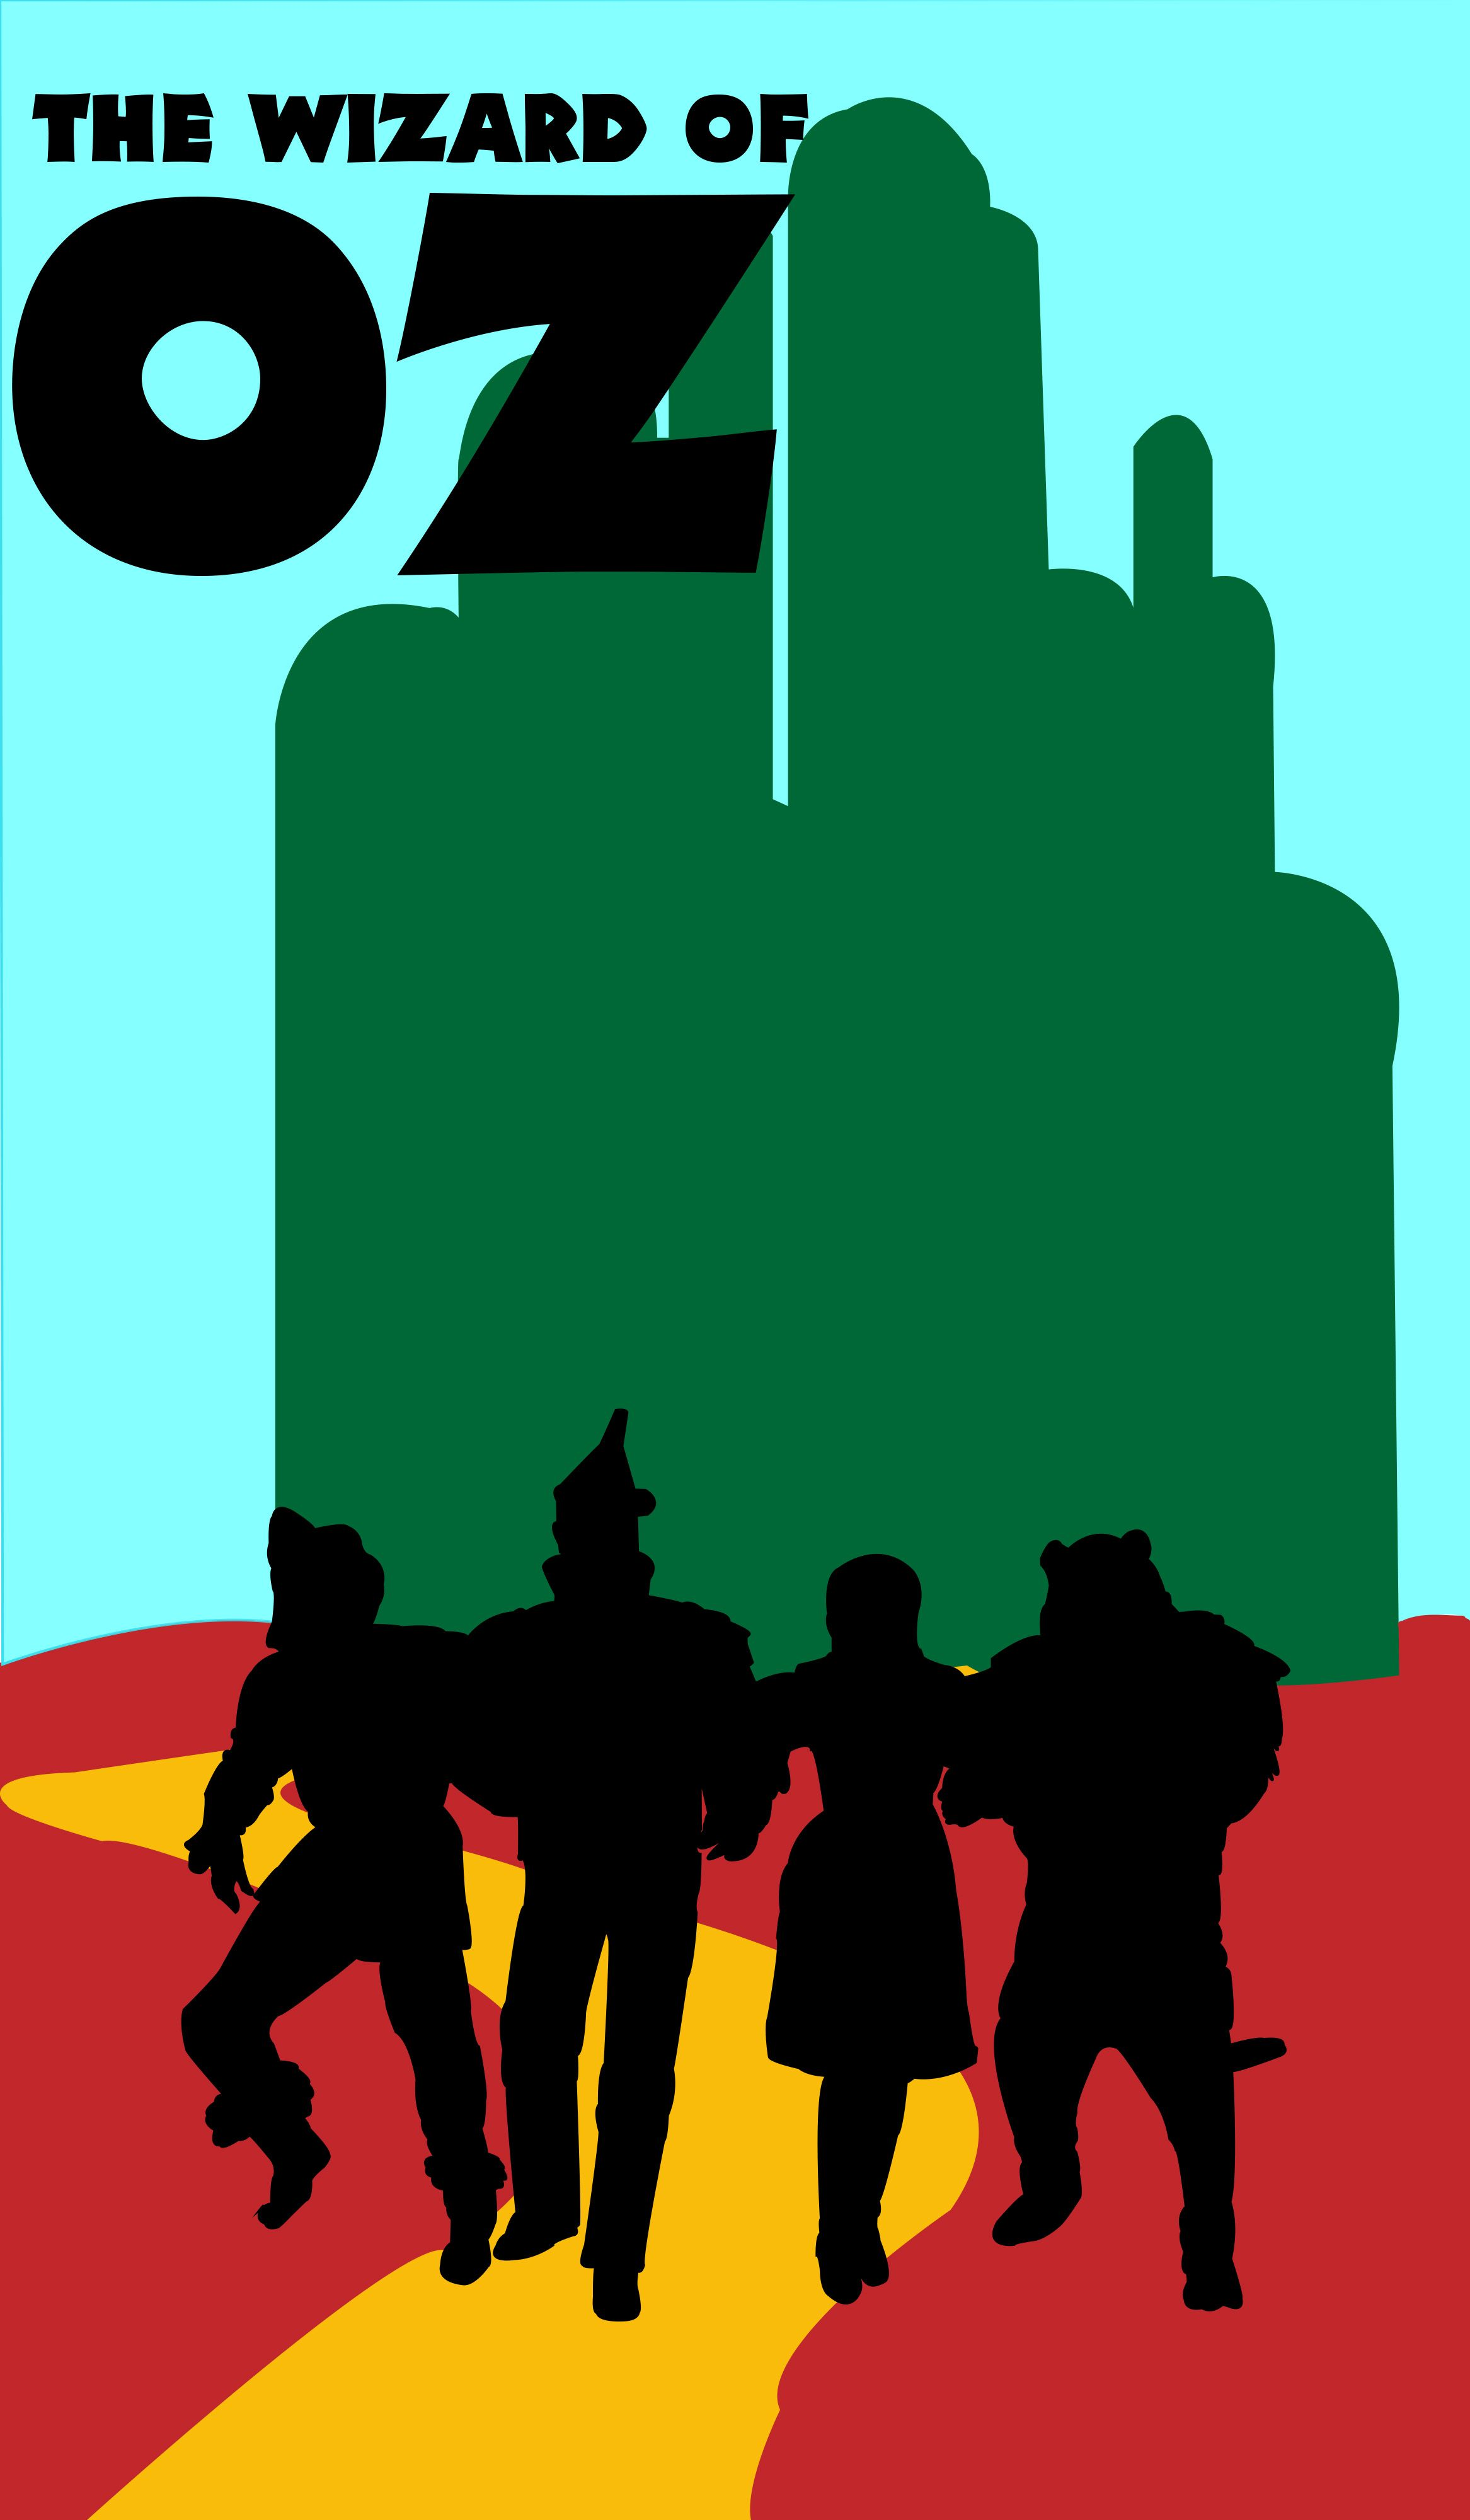 Emerald City Silhouette at GetDrawings.com.